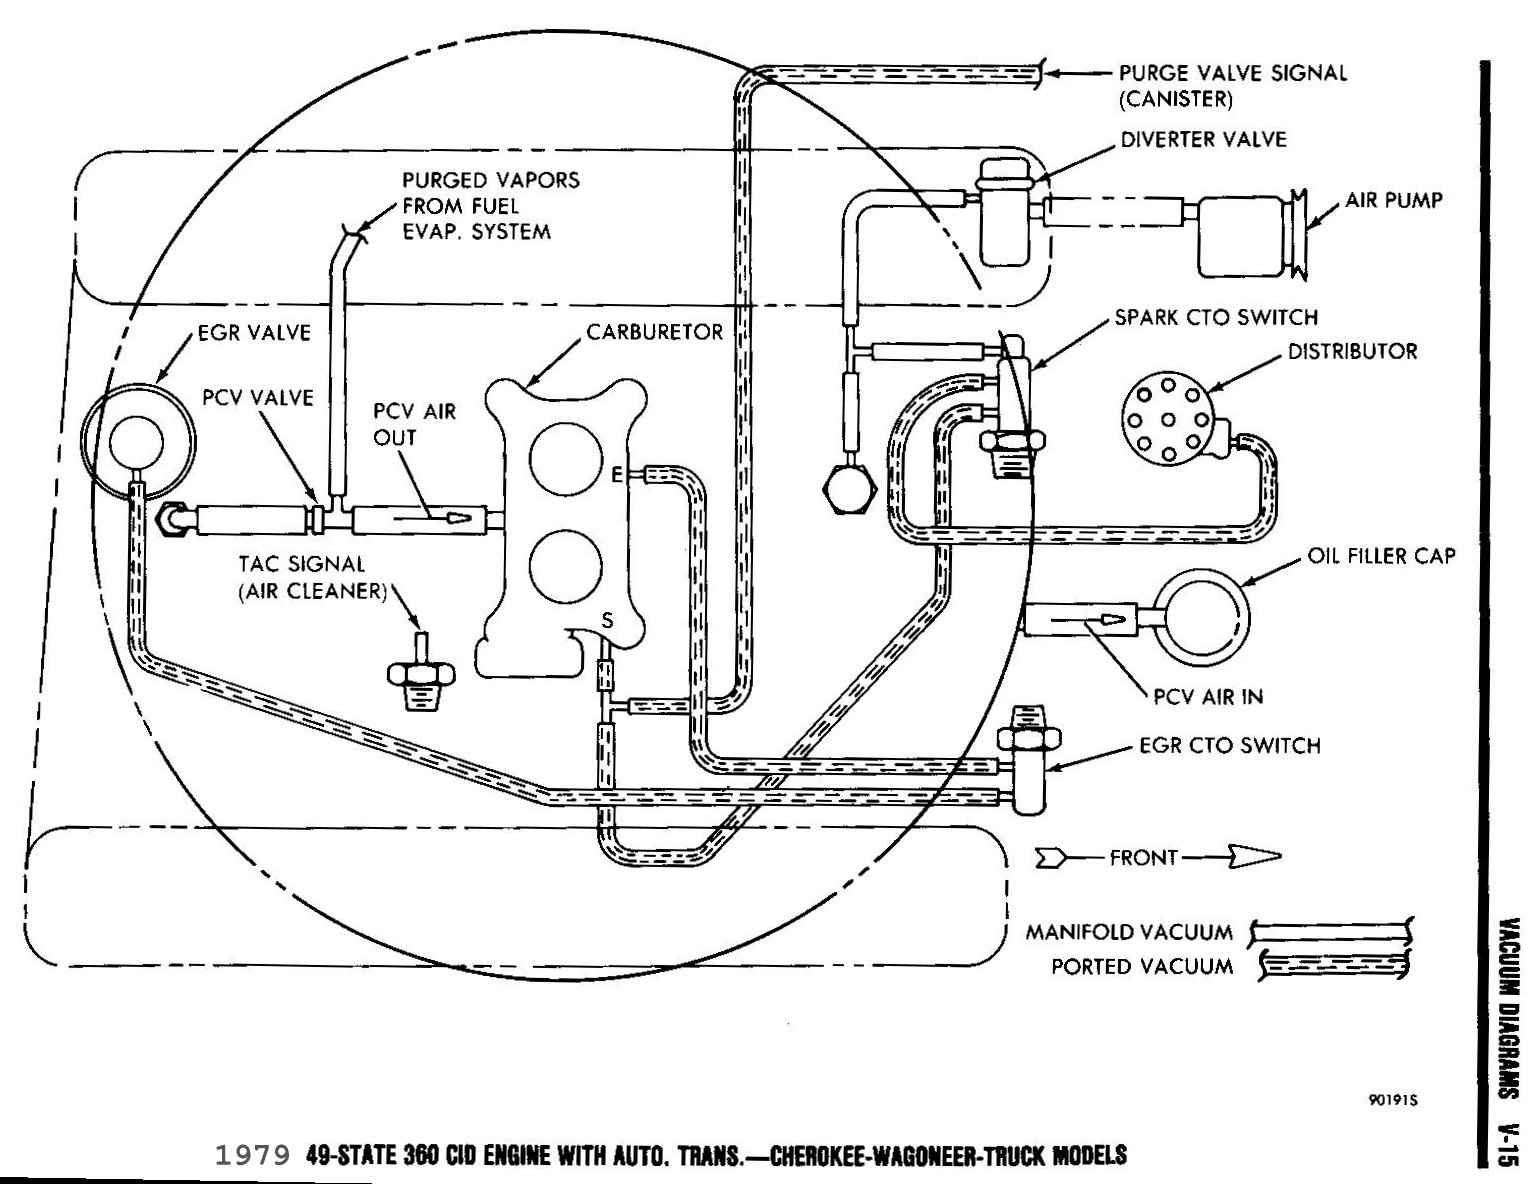 hight resolution of tom oljeep collins fsj vacuum layout page 91 jeep grand wagoneer vacuum diagram jeep grand wagoneer vacuum diagram